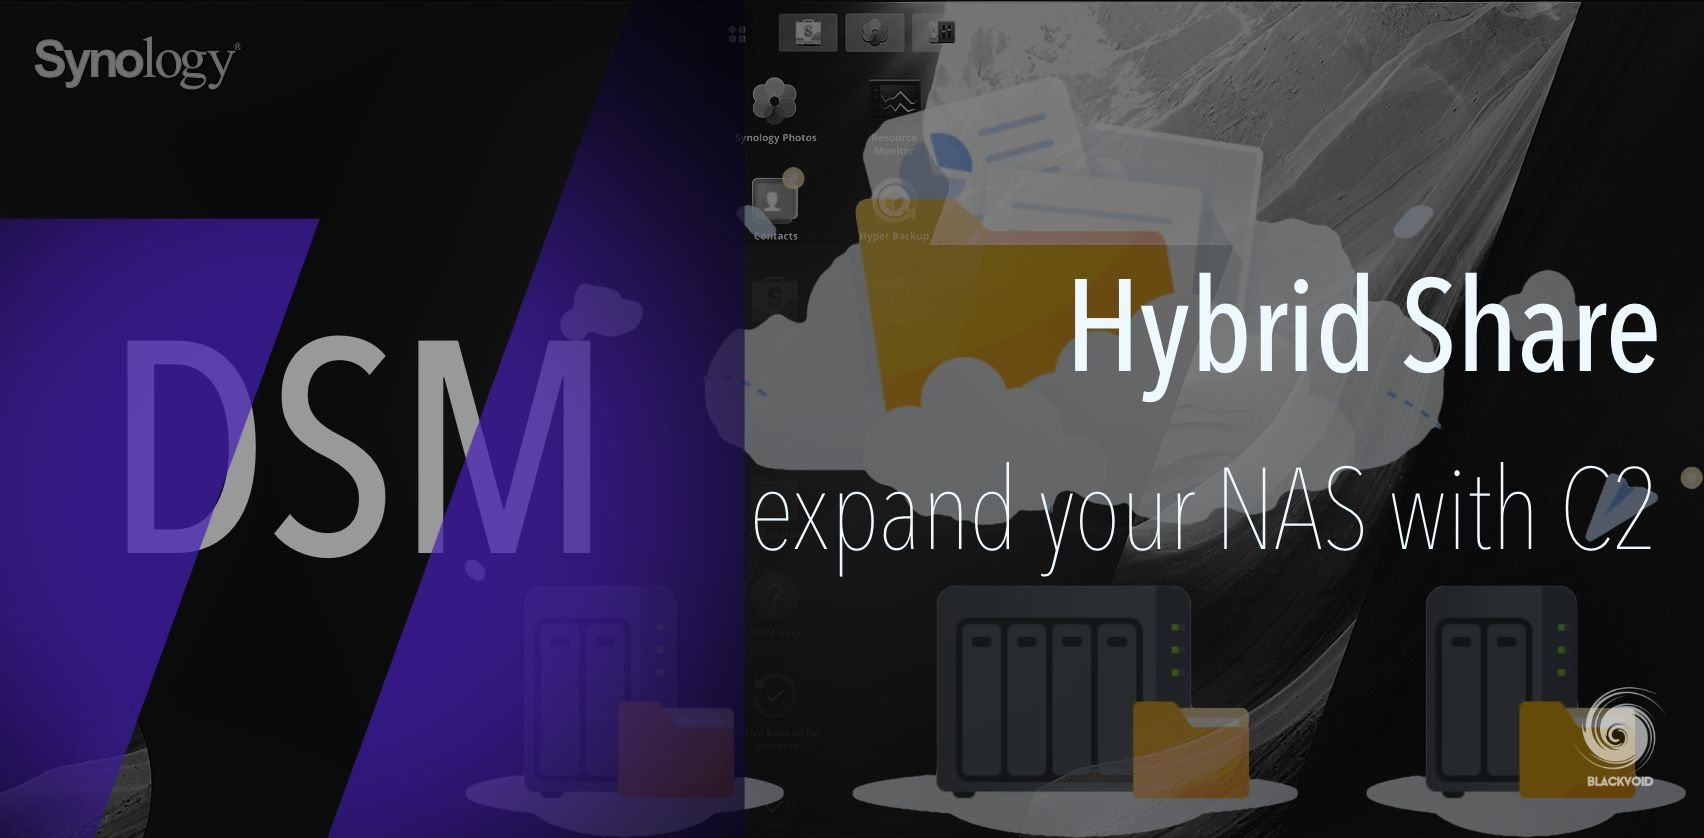 DSM 7 - Hybrid Share, expand your NAS to Synology C2